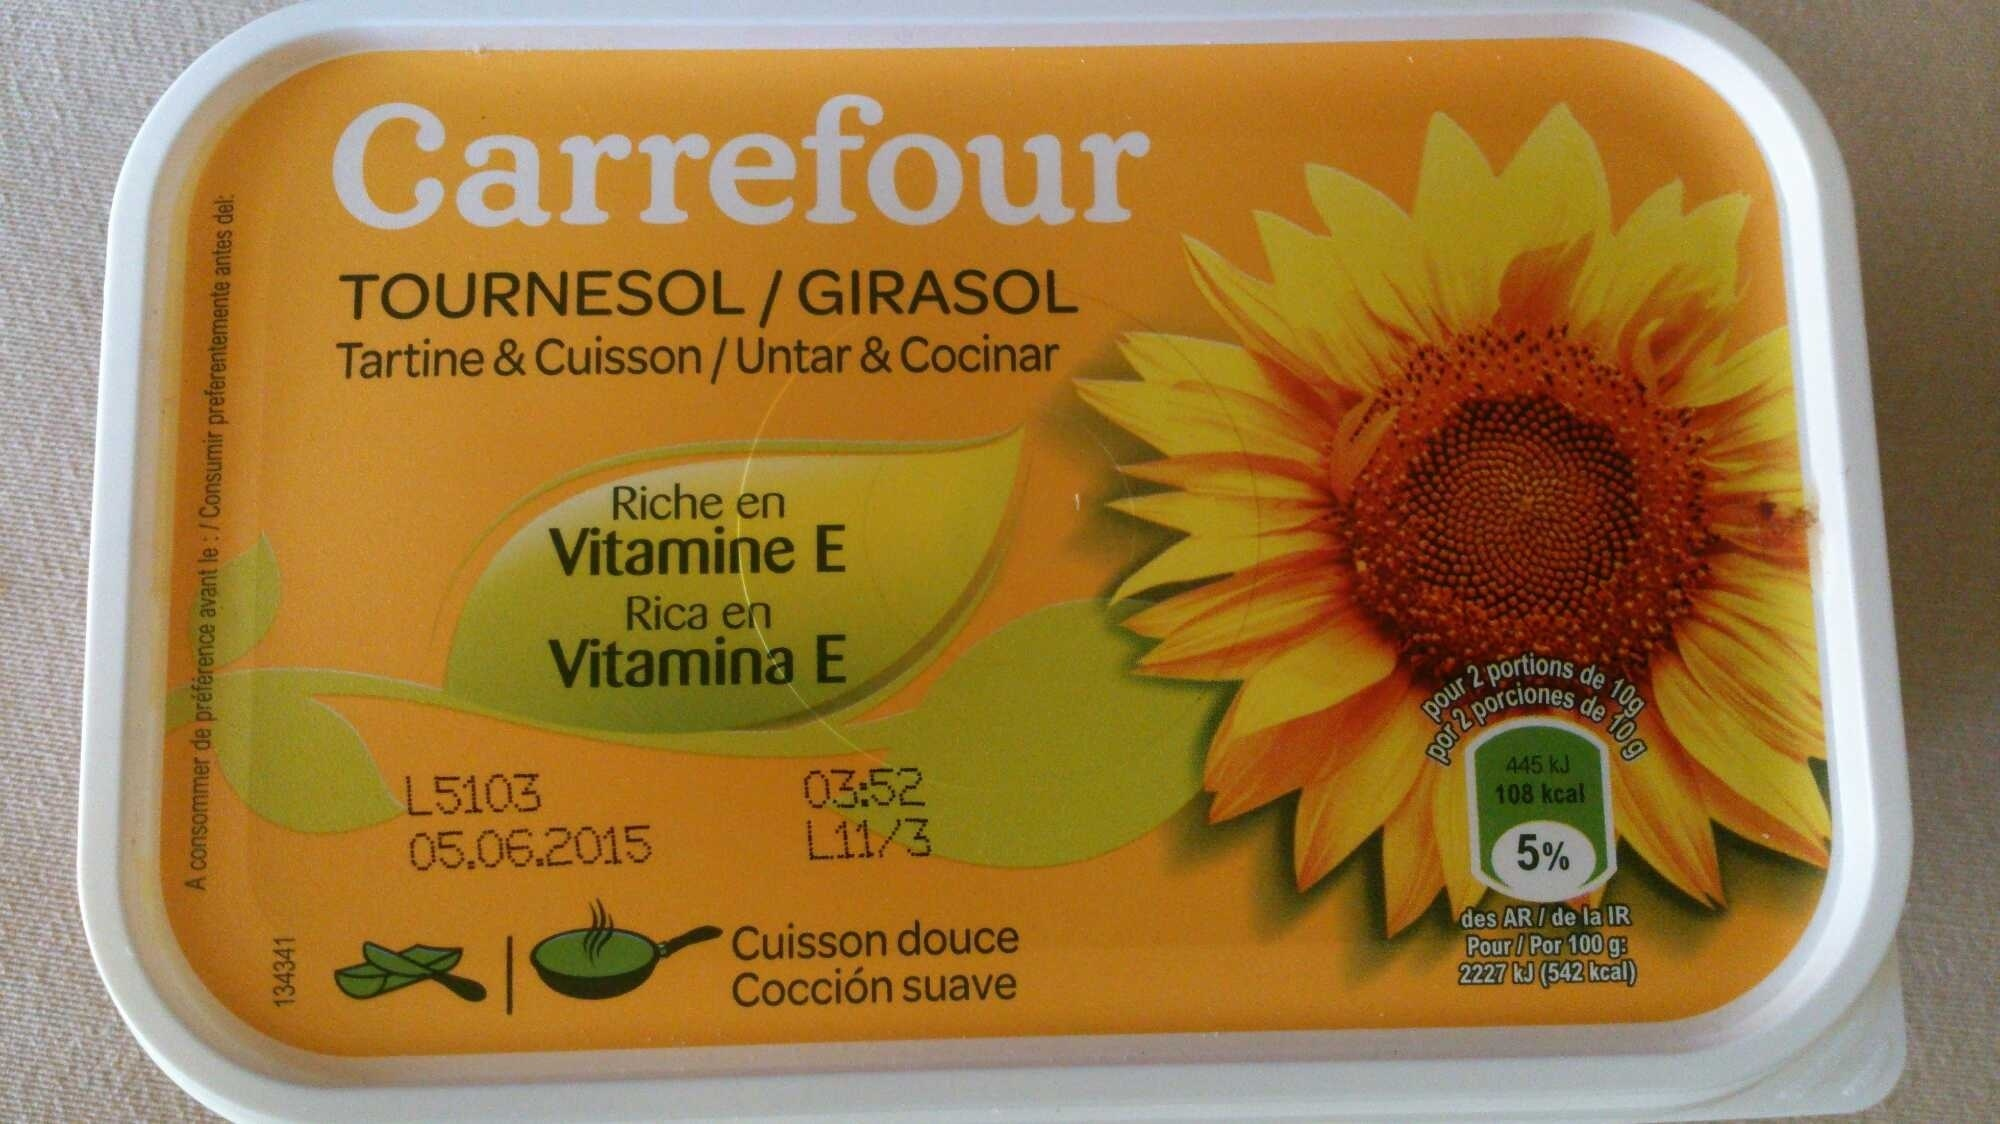 Tournesol tartine & cuisson - Product